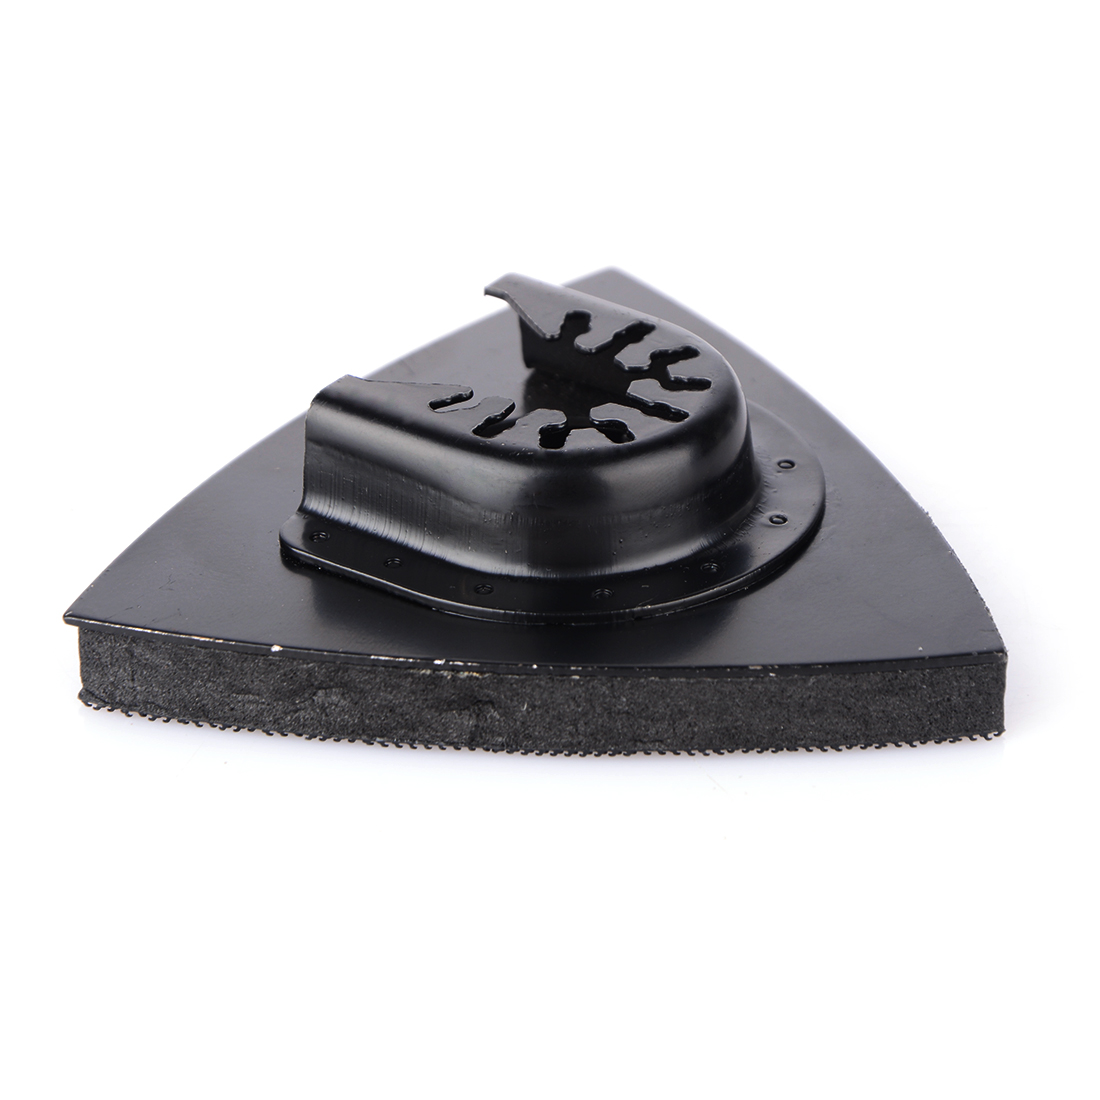 1pc 82mm Multitool Reciprocating Saw Blade Flush Triangular Sanding Abrasive Pad Oscillating For Home Power Tool Fein Multimaste